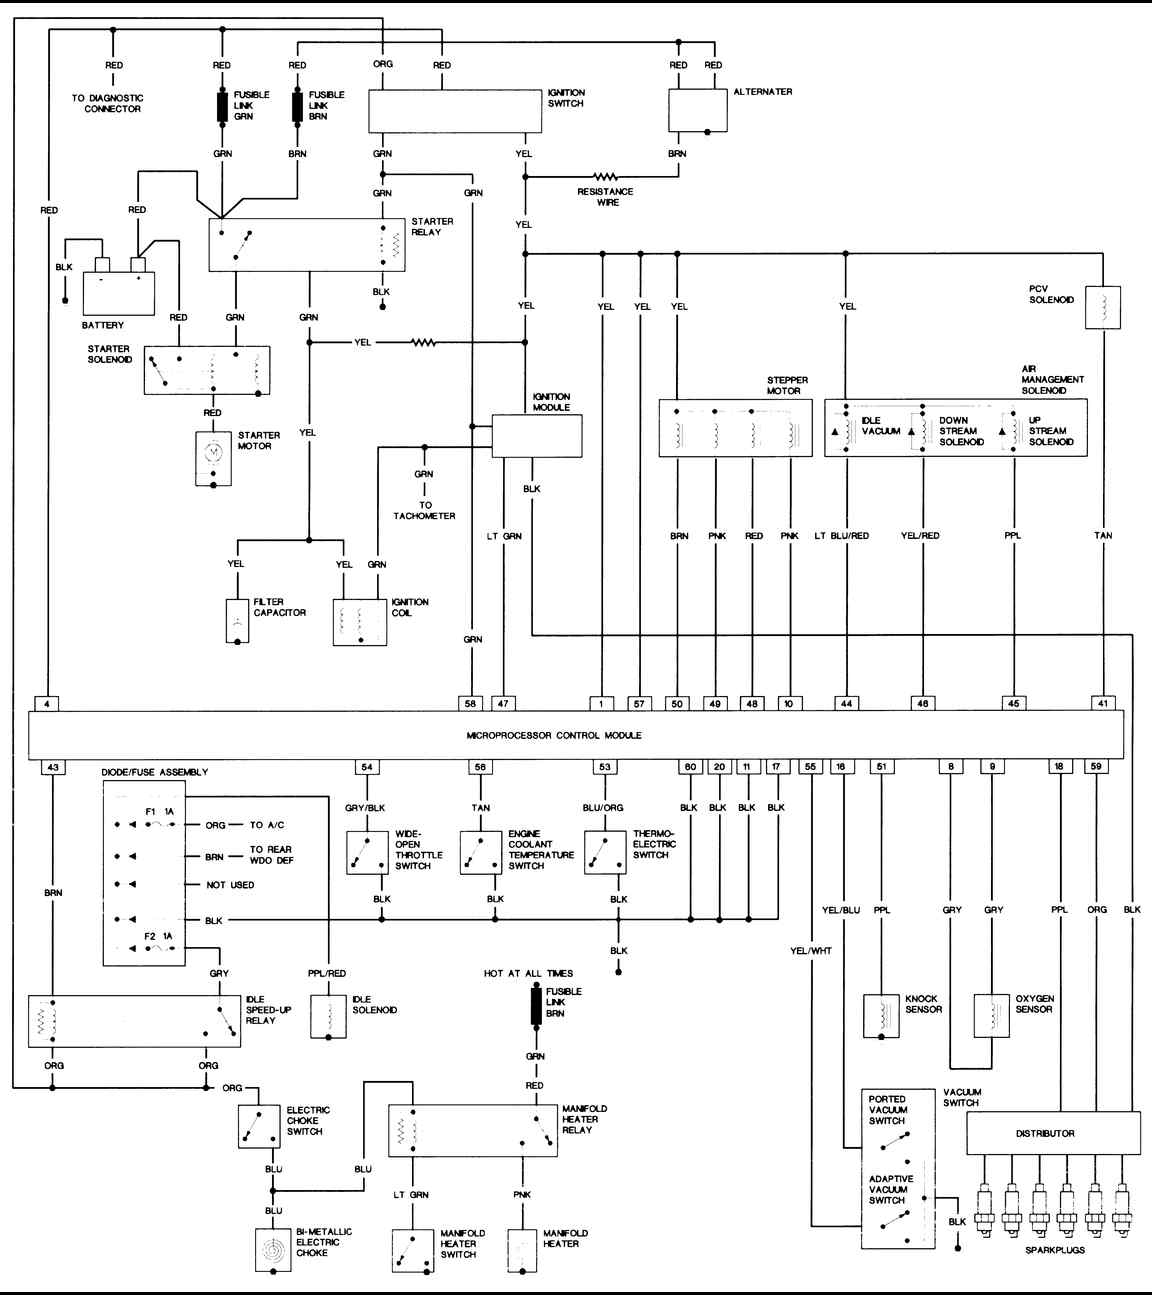 Jeep wrangler yj wiring diagram fuel